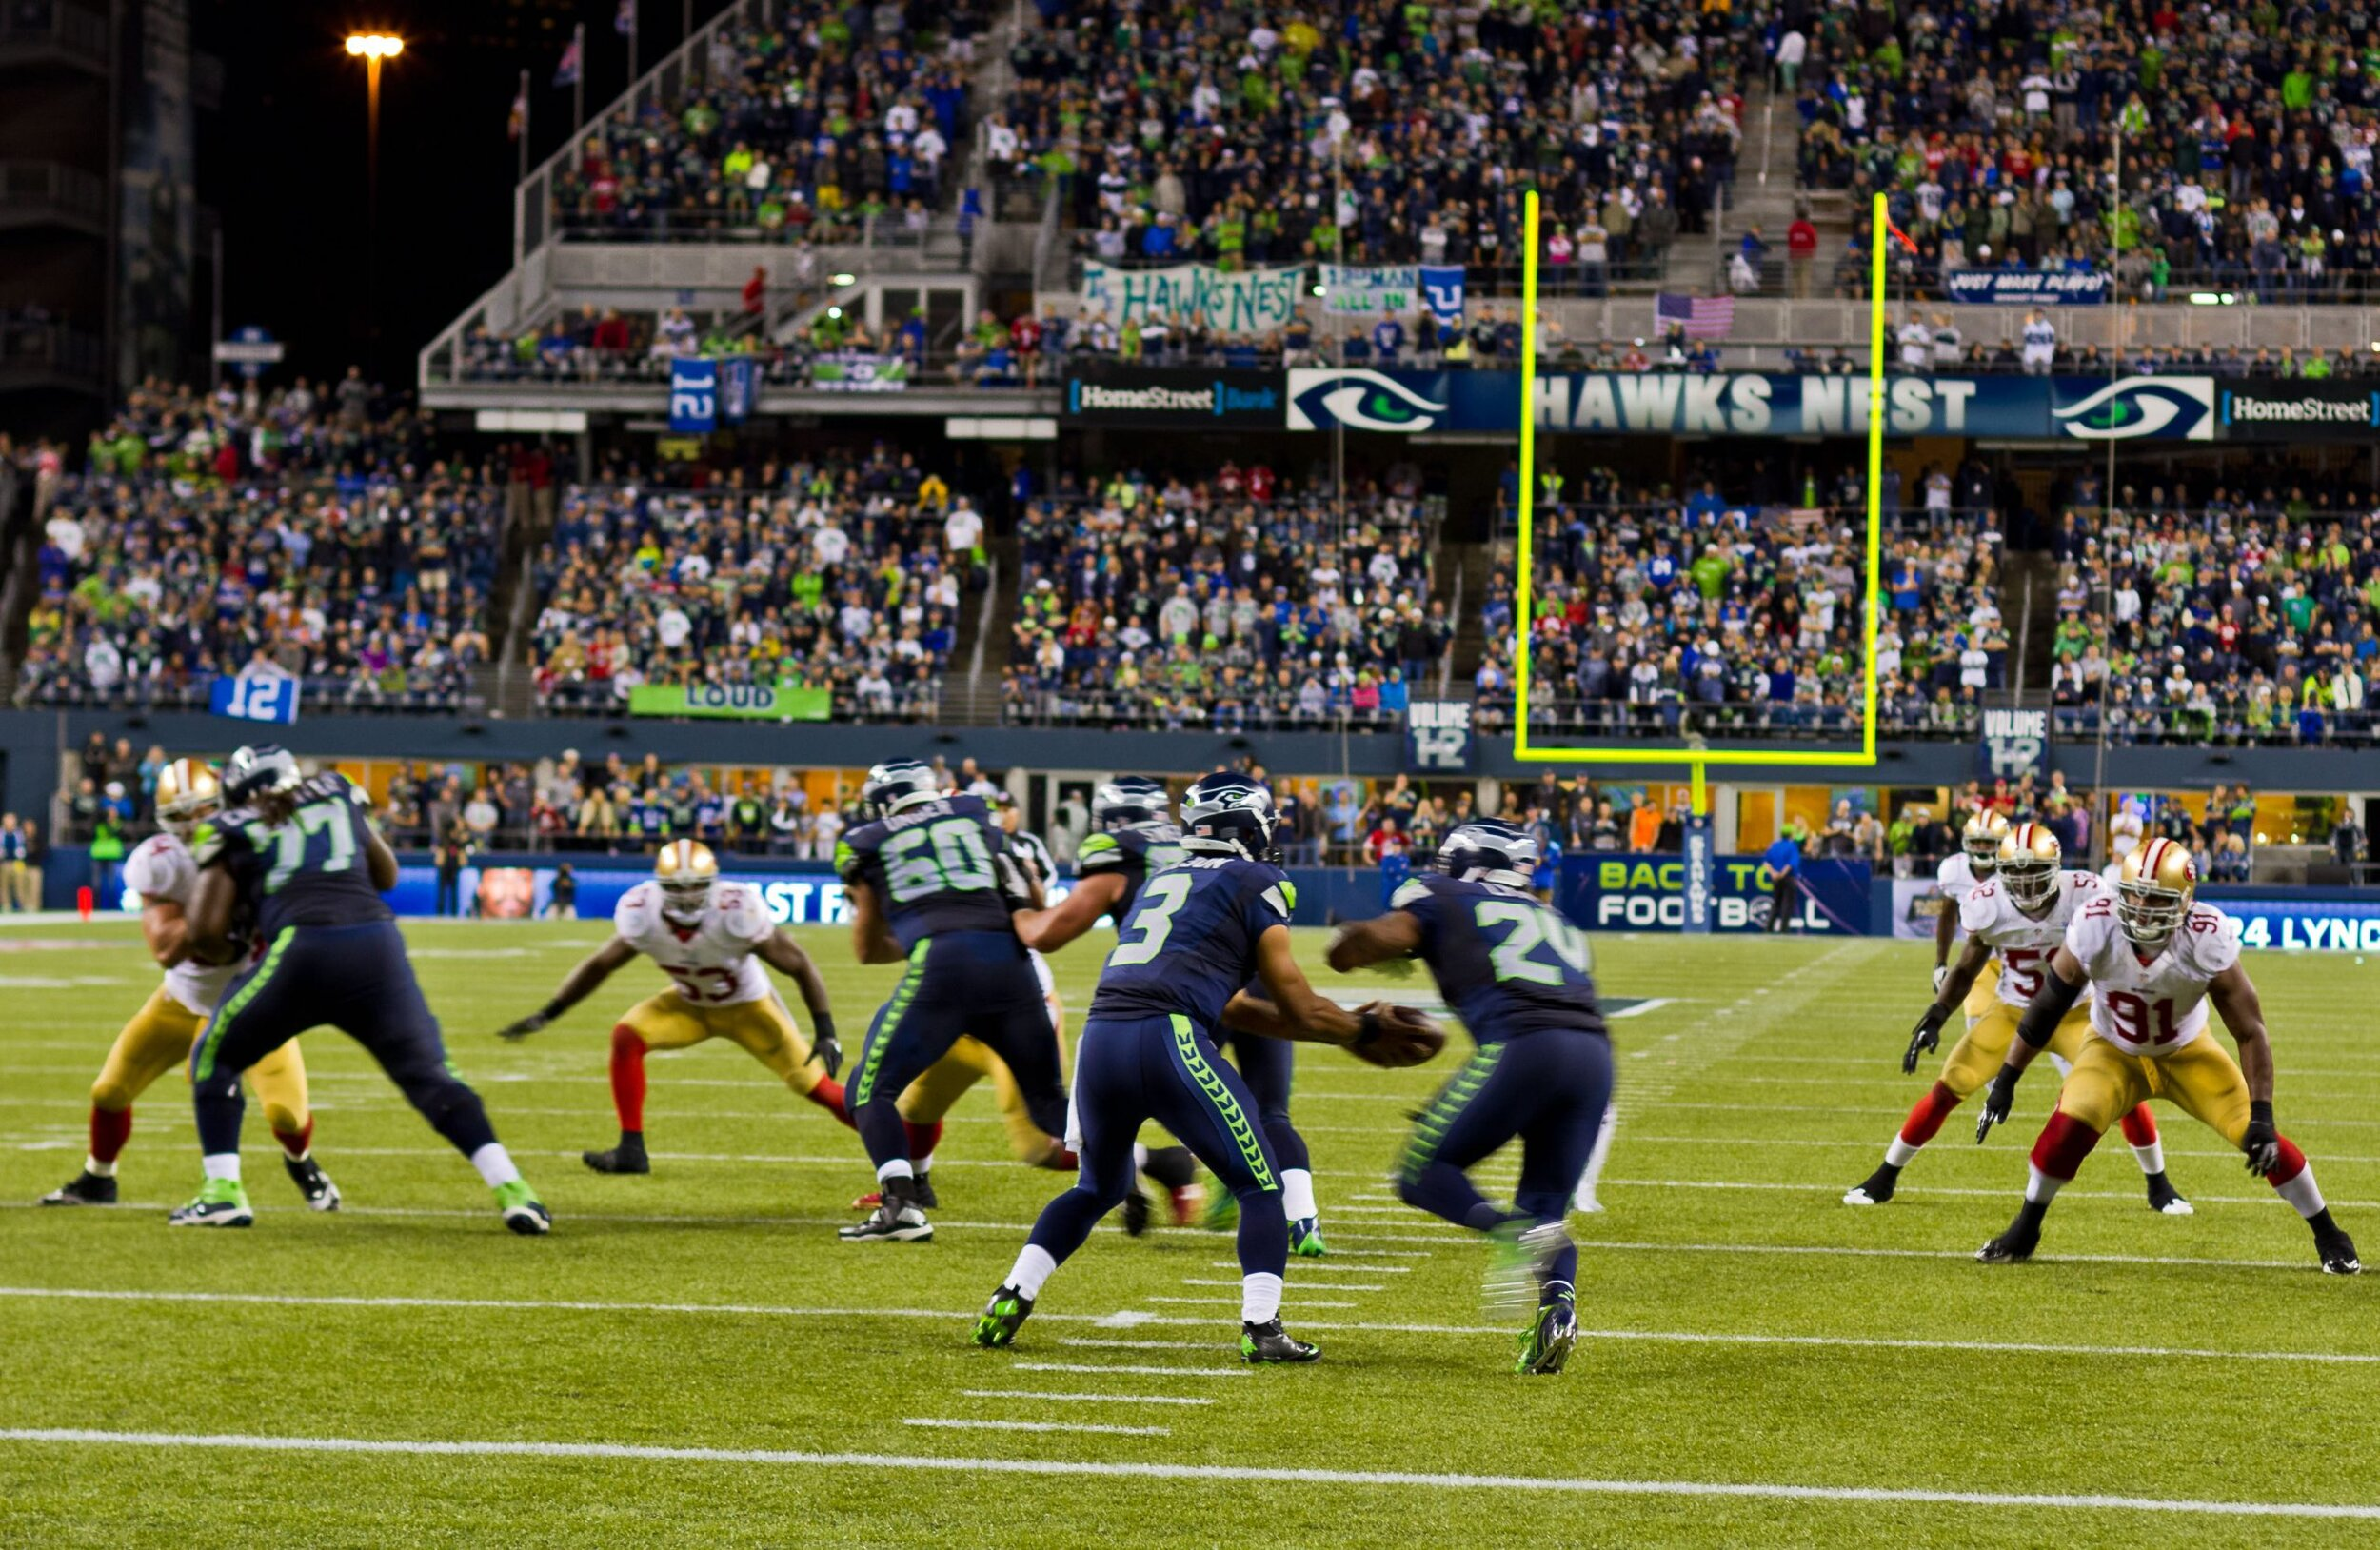 49ers-at-Seahawks-scaled.jpg